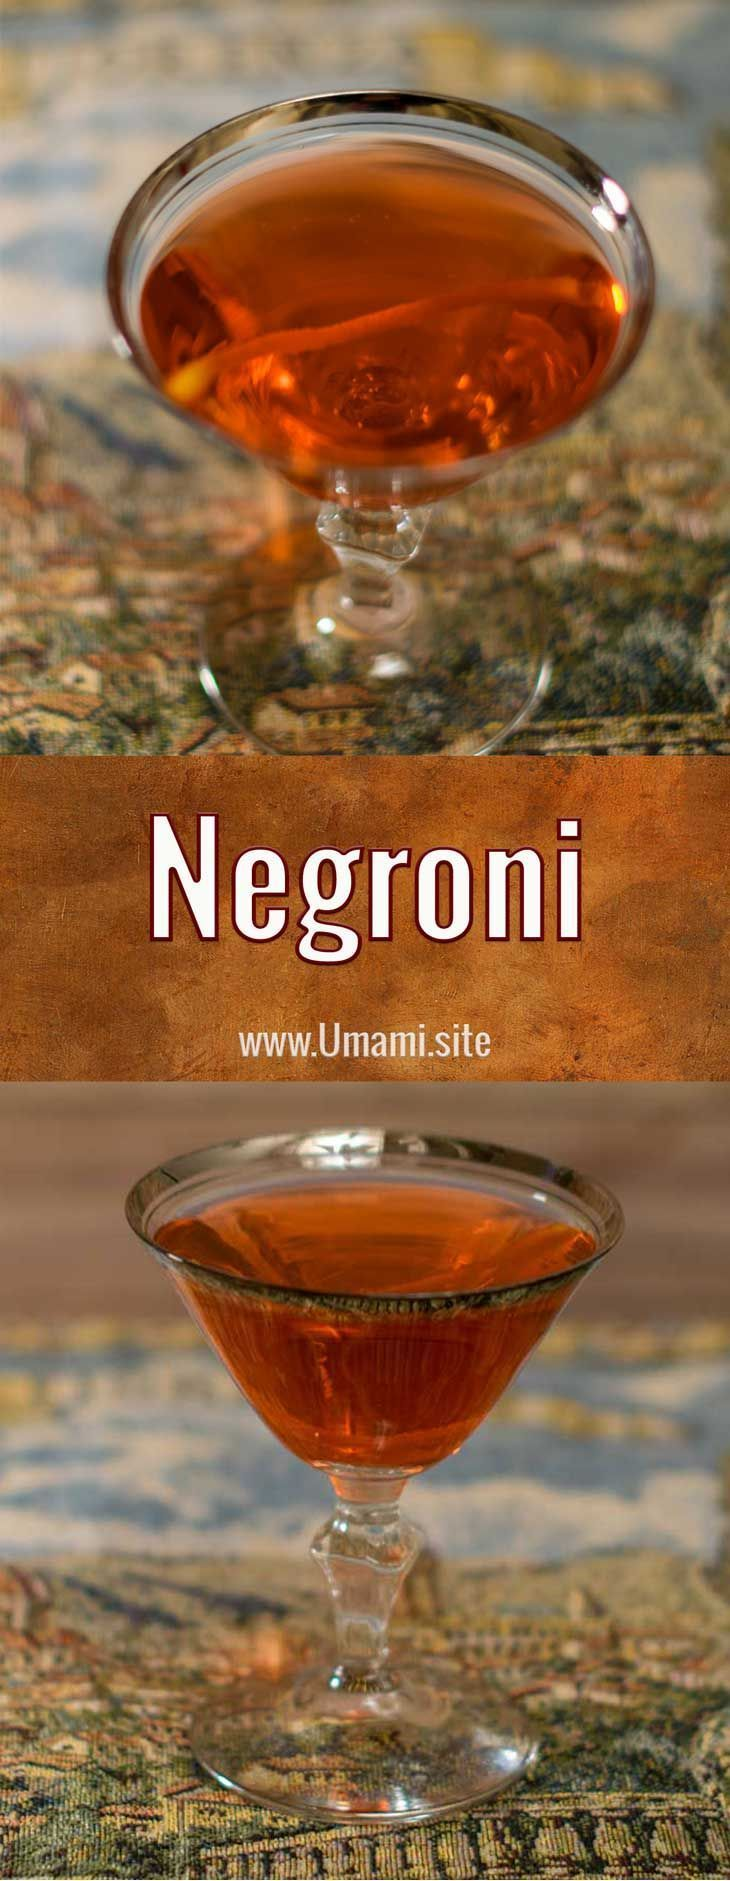 The Negroni is a classic Italian cocktail made with equal portions of gin, Campari, and sweet vermouth. #negroni #cocktail #recipe